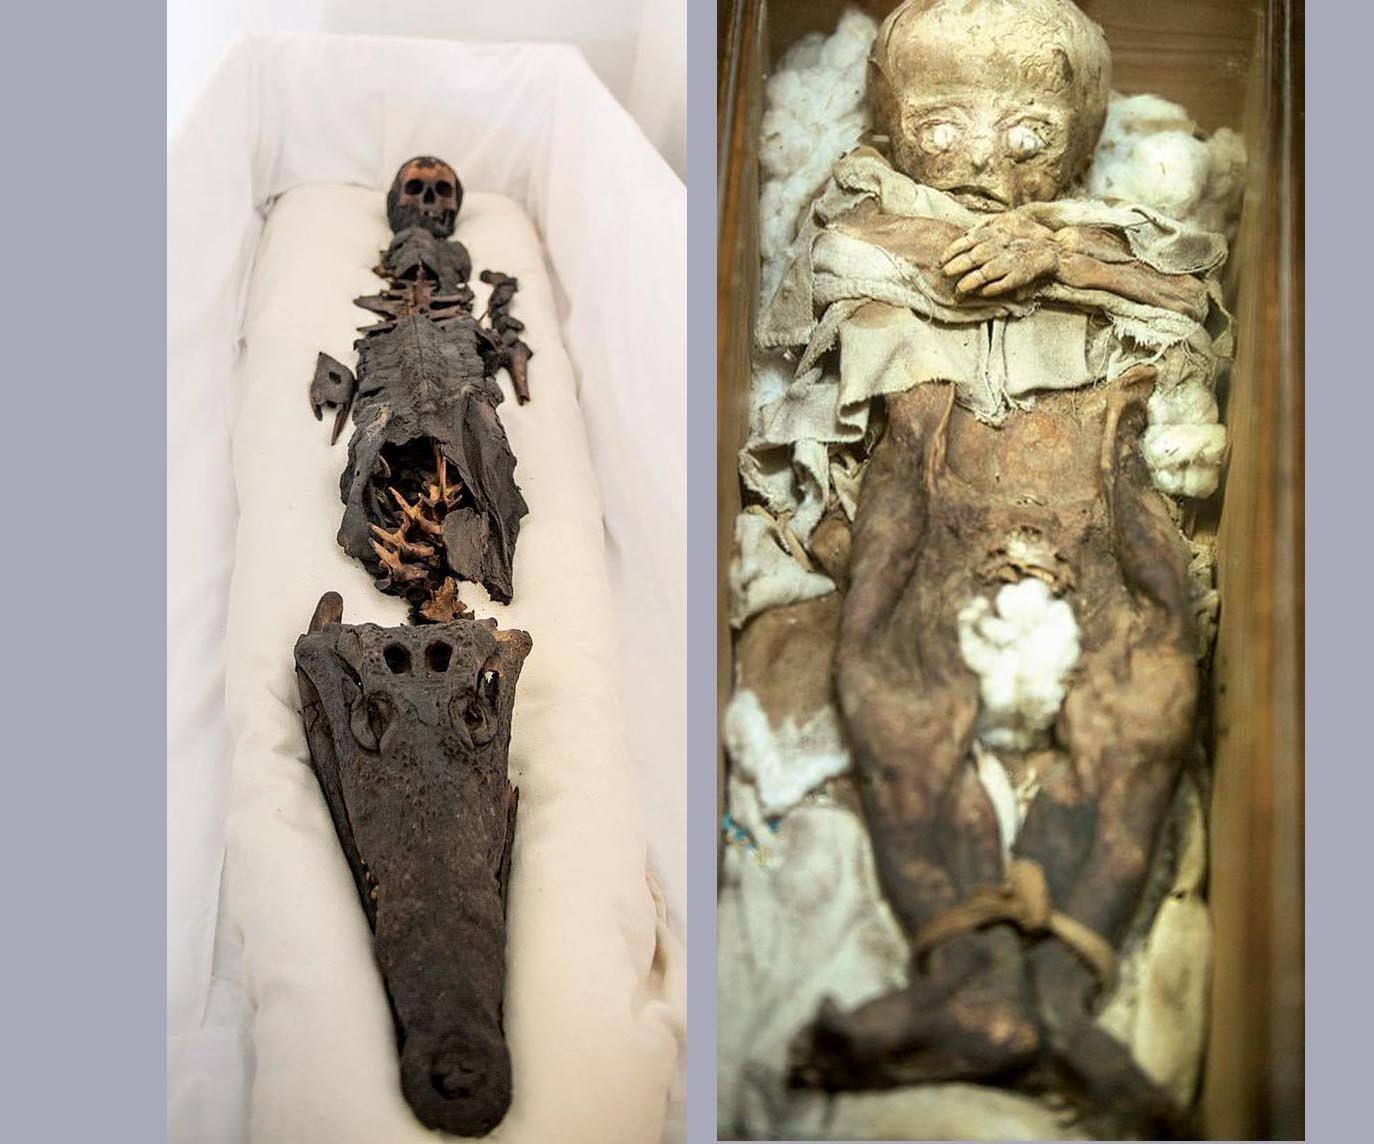 traces of tuberculosis found in mummies of egypt Over the years, scientists have found evidence of cancers, heart disease, starvation, ulcers, smallpox, tuberculosis and other infections in ancient remains from all over the world.